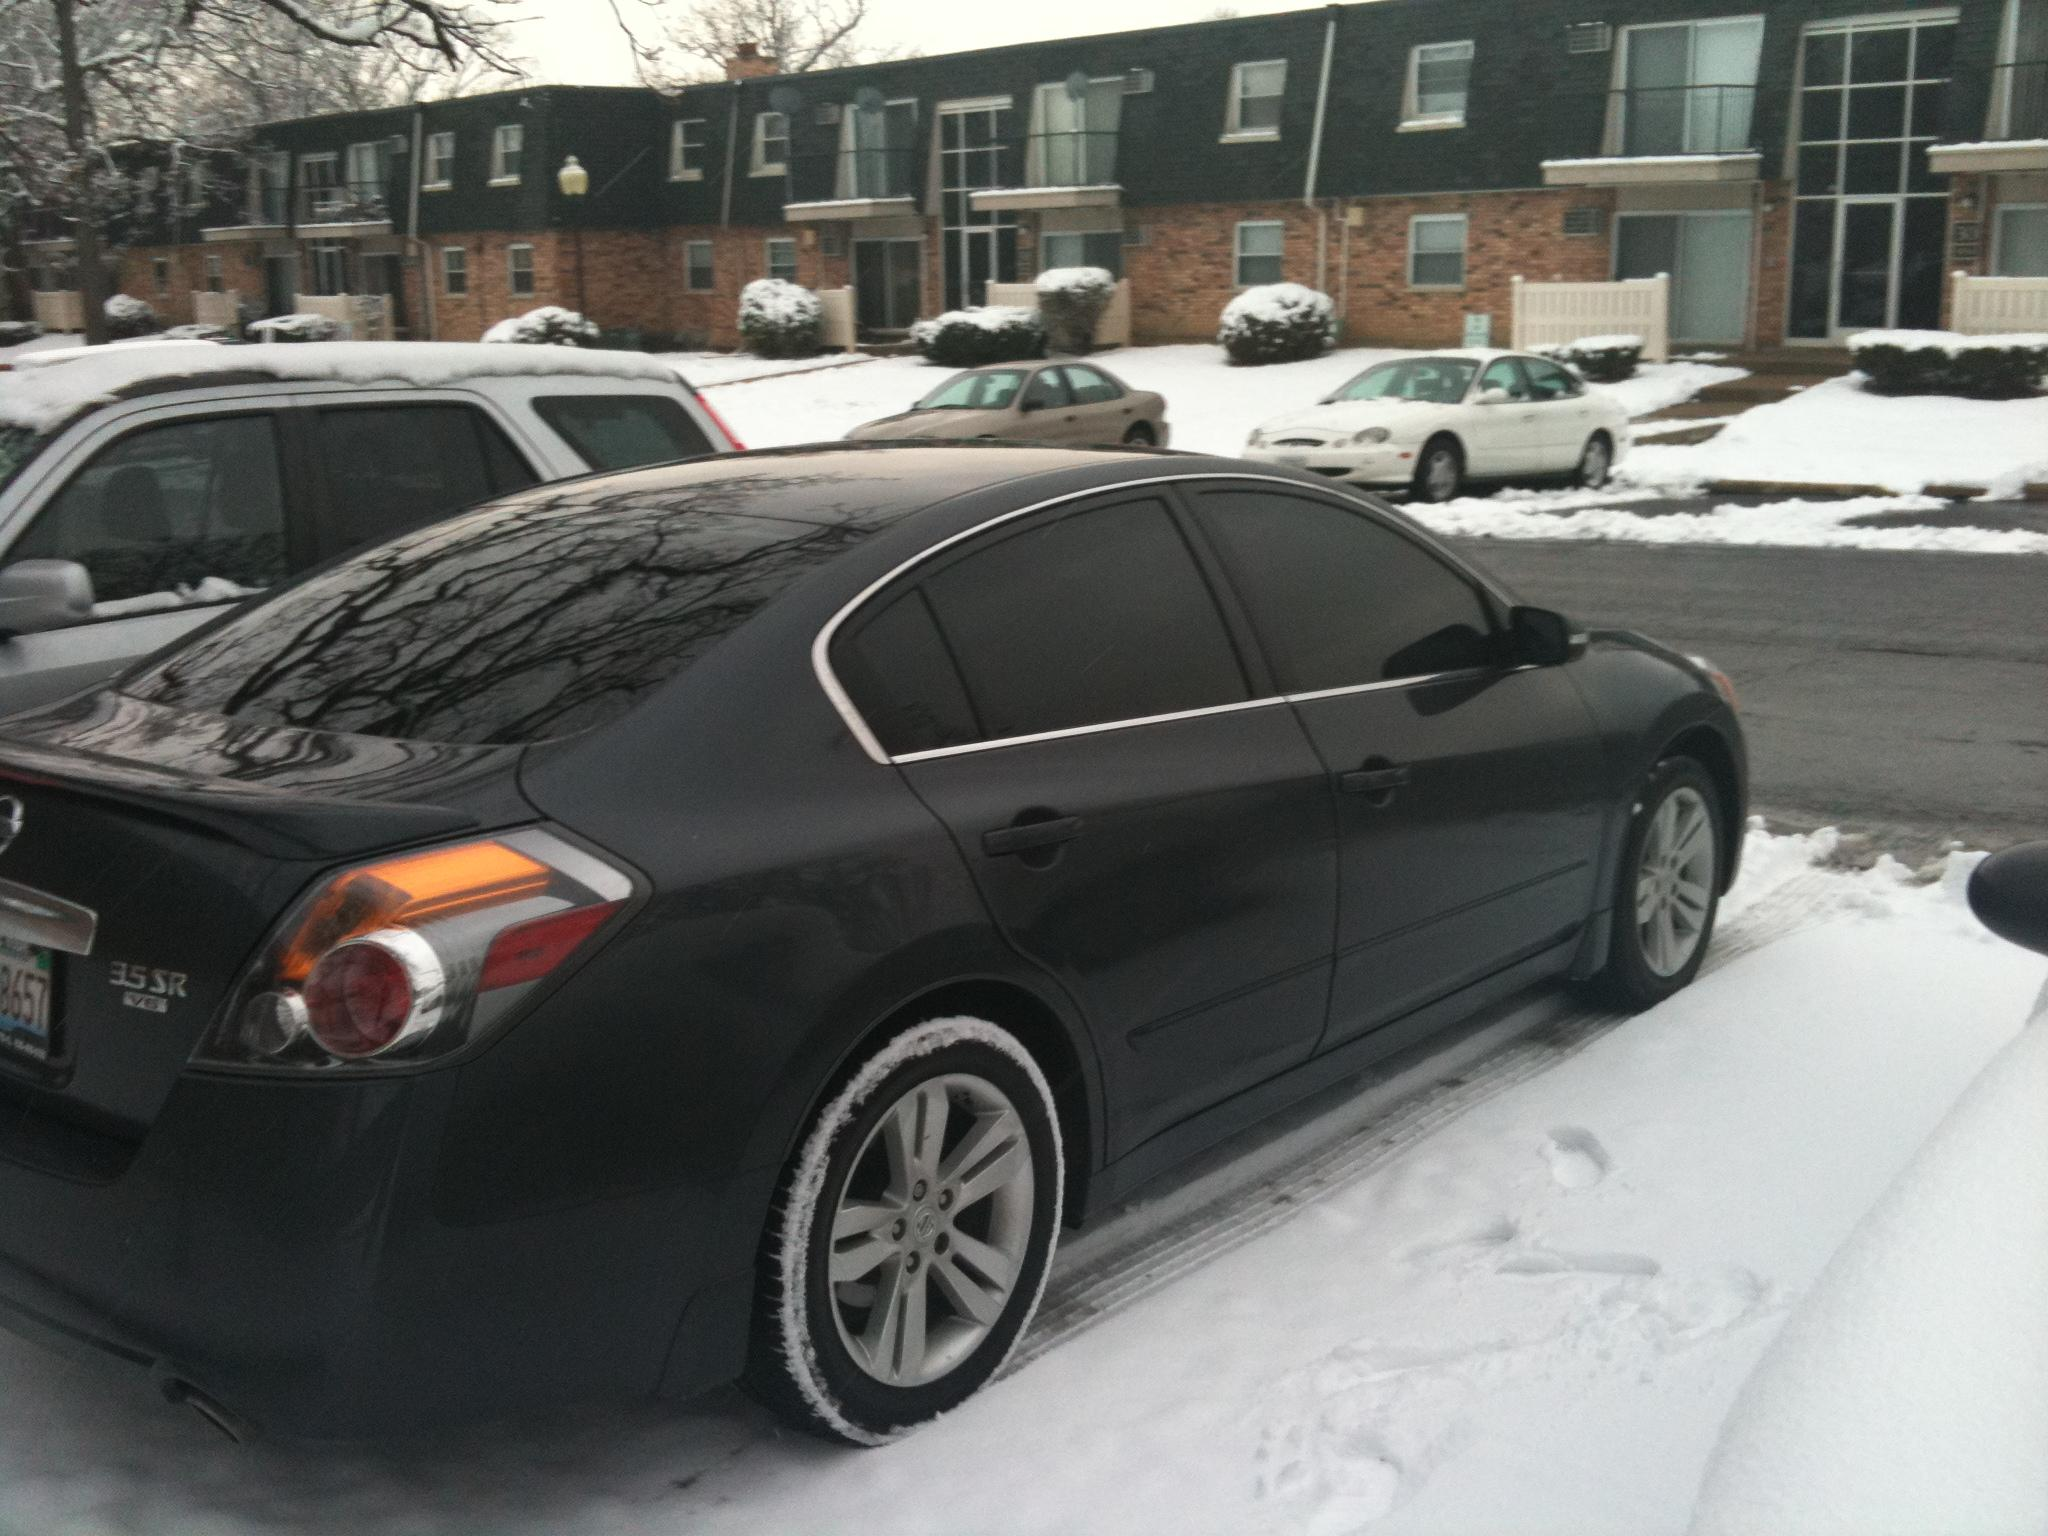 Monte2989 2010 Nissan Altima3.5 SR Sedan 4D Specs, Photos ...